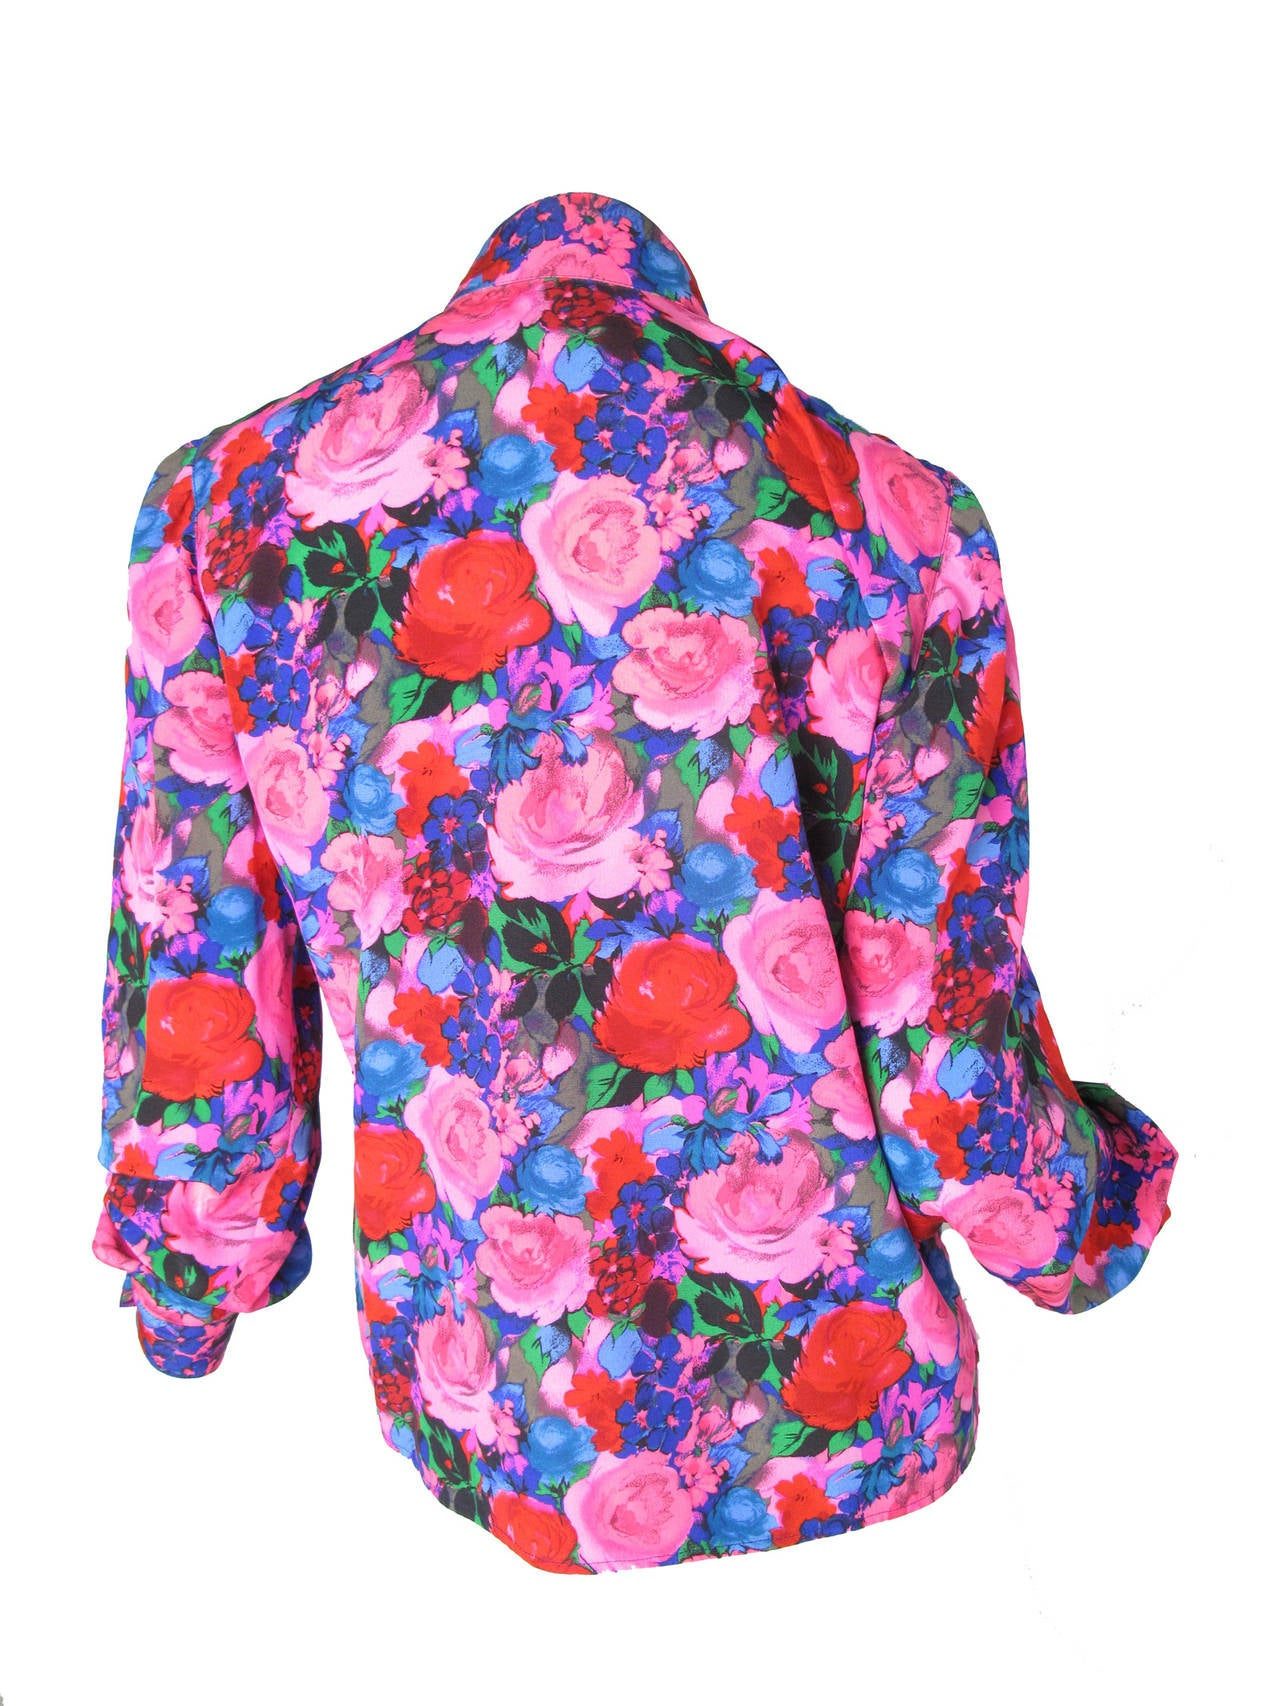 """Ungaro silk floral blouse with pleating   40"""" bust, 38"""" waist, 24"""" sleeve, 15 1/2"""" shoulder ,  23"""" length.  Size 6"""